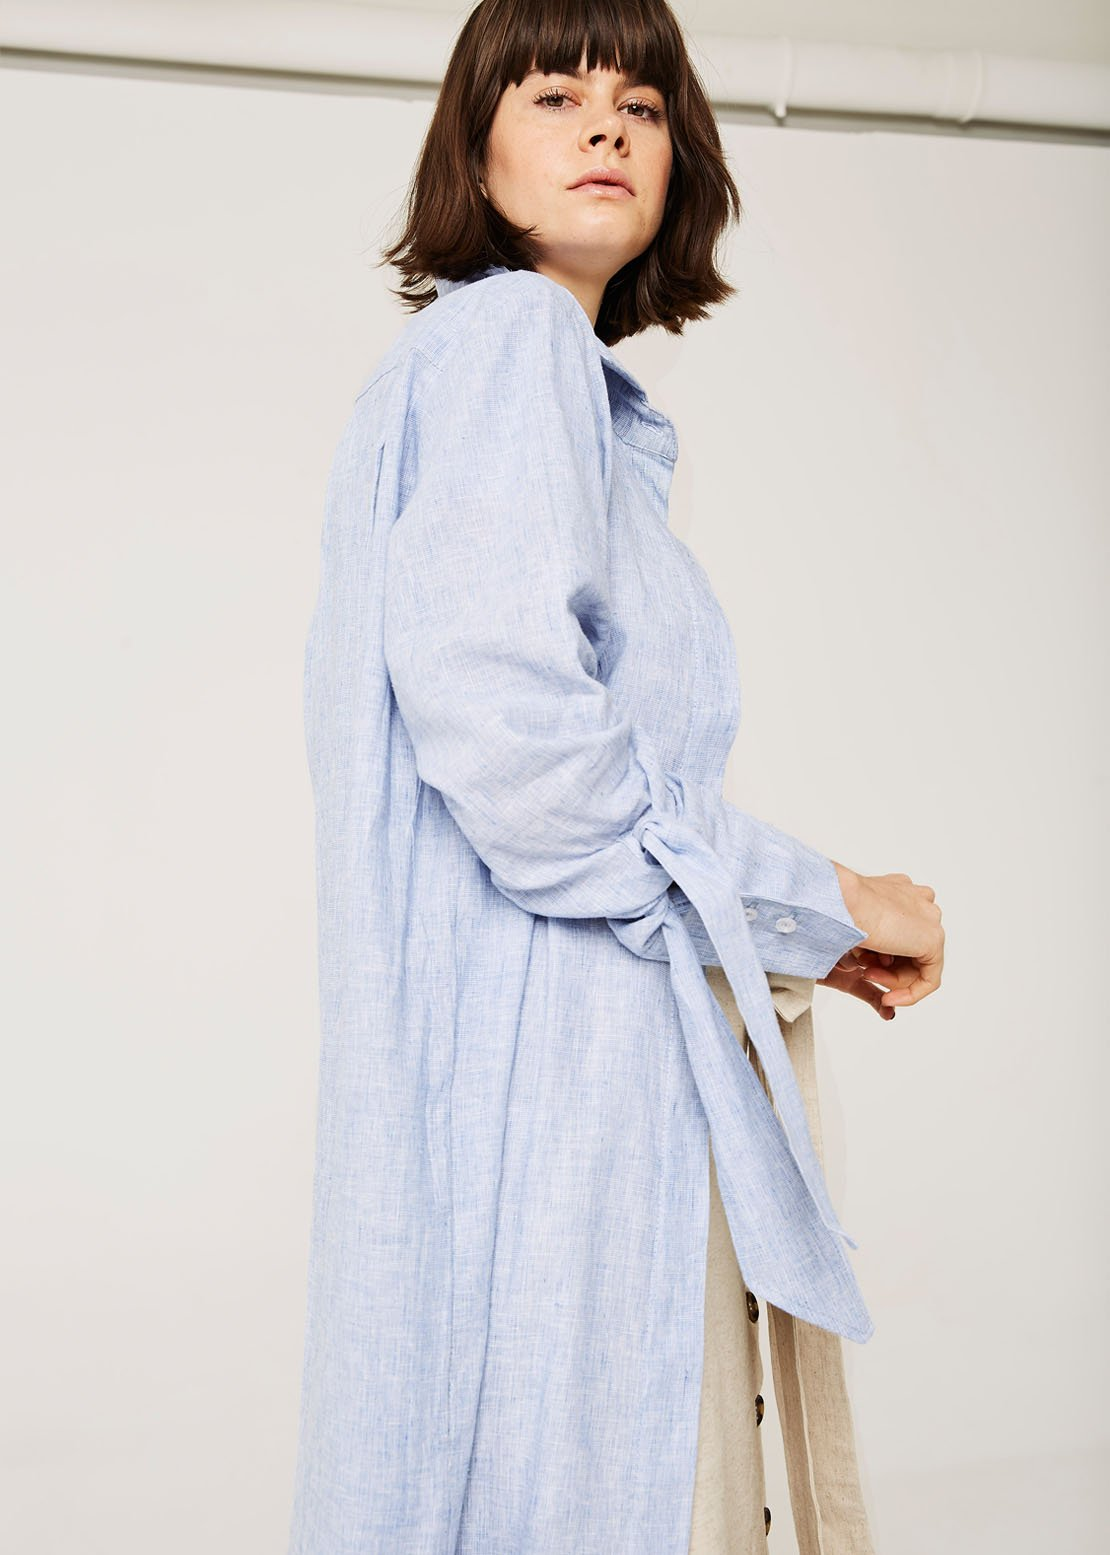 Bow sleeve shirt dress, Merwe Salt